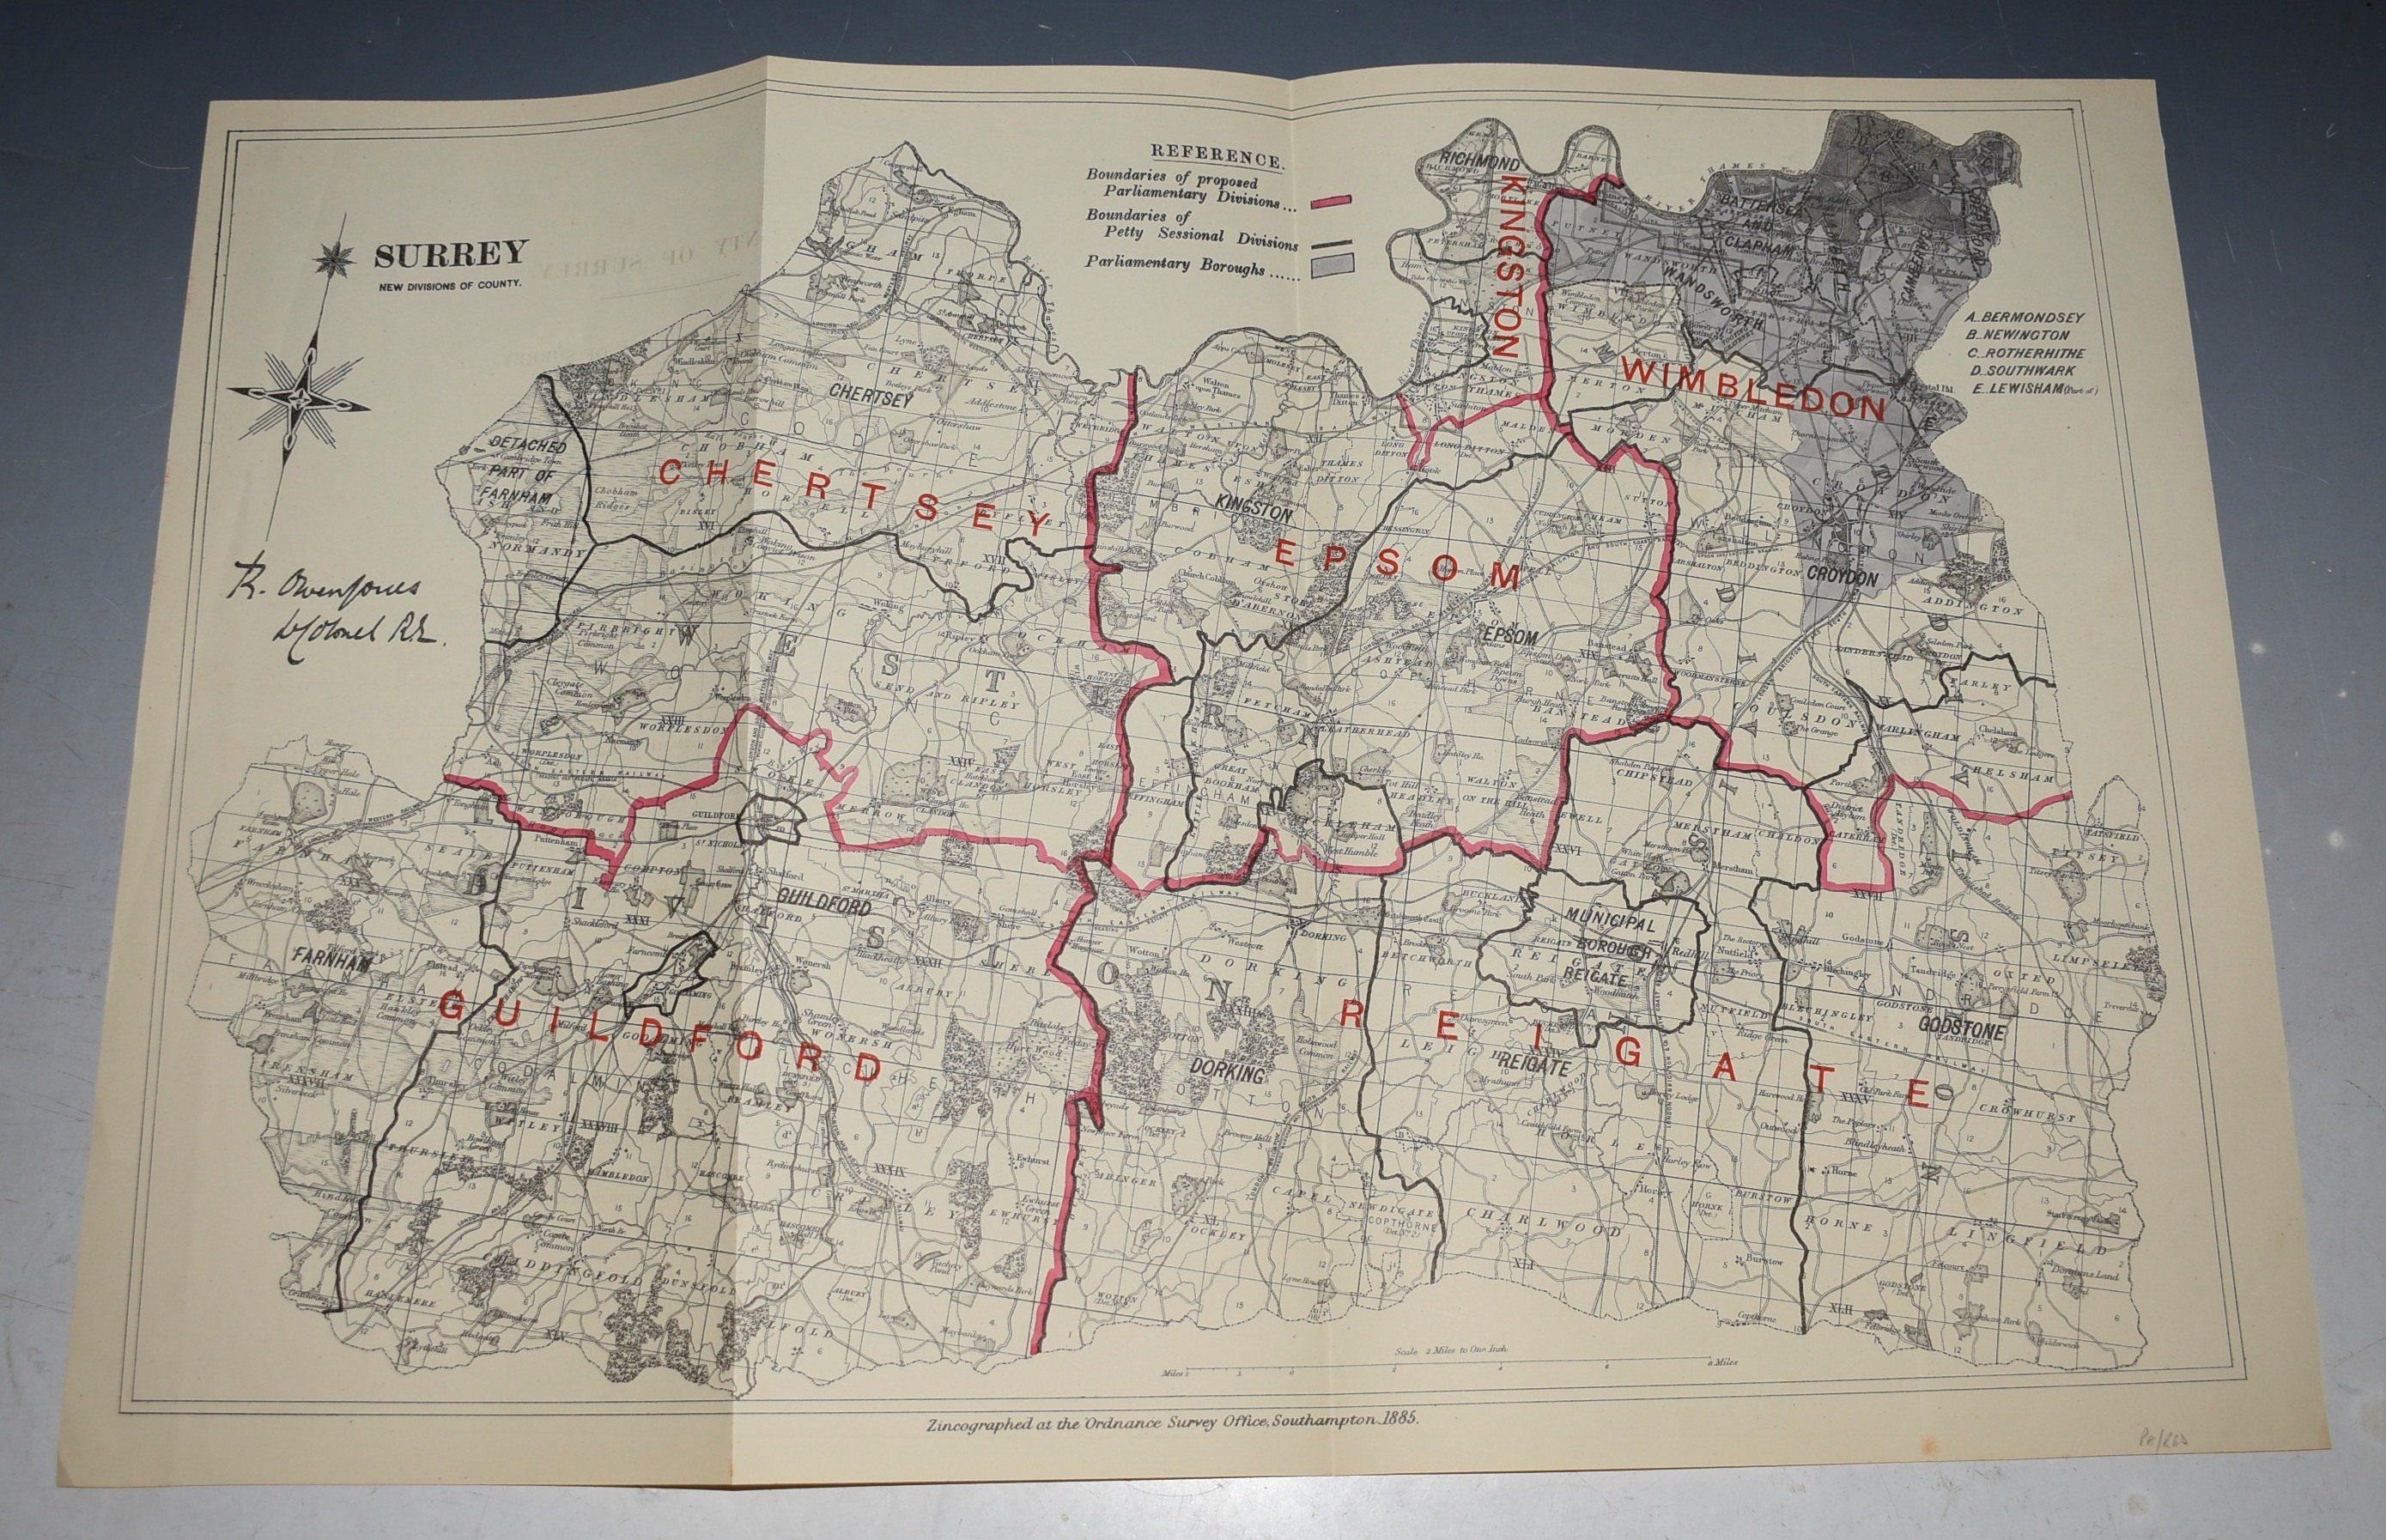 Image for SURREY New Divisions of County. An antique zincographed map drawn up by R O Jones